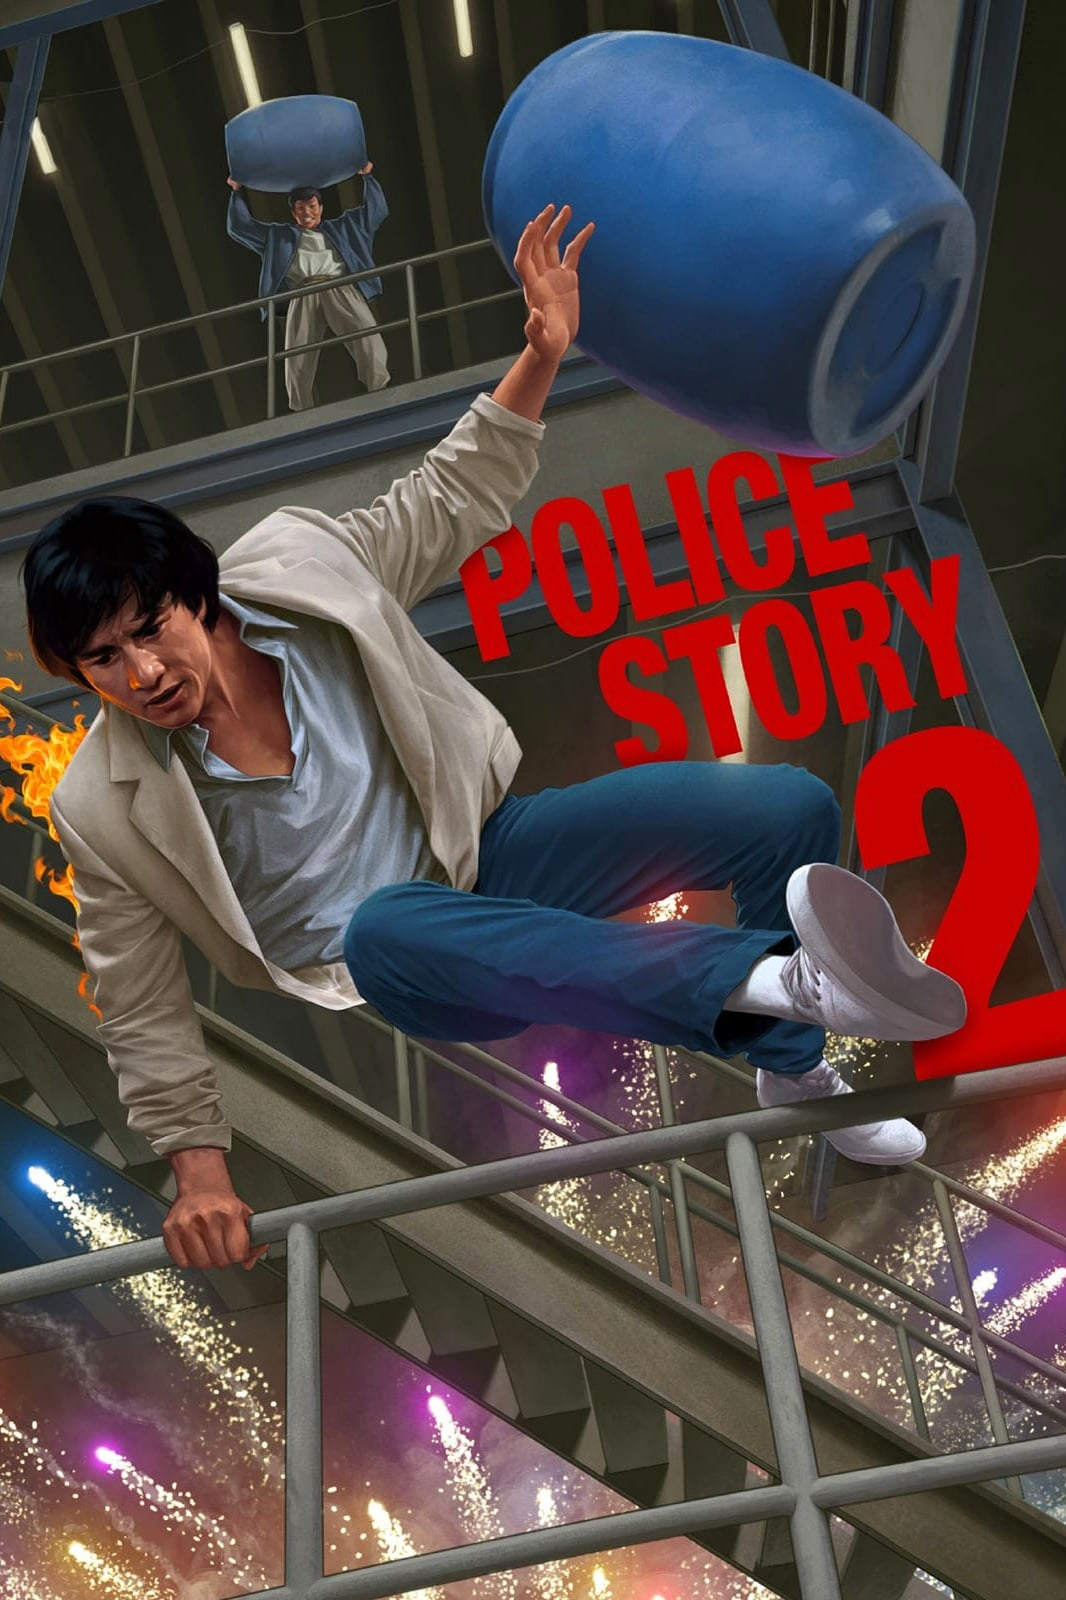 Poster for Police Story 2